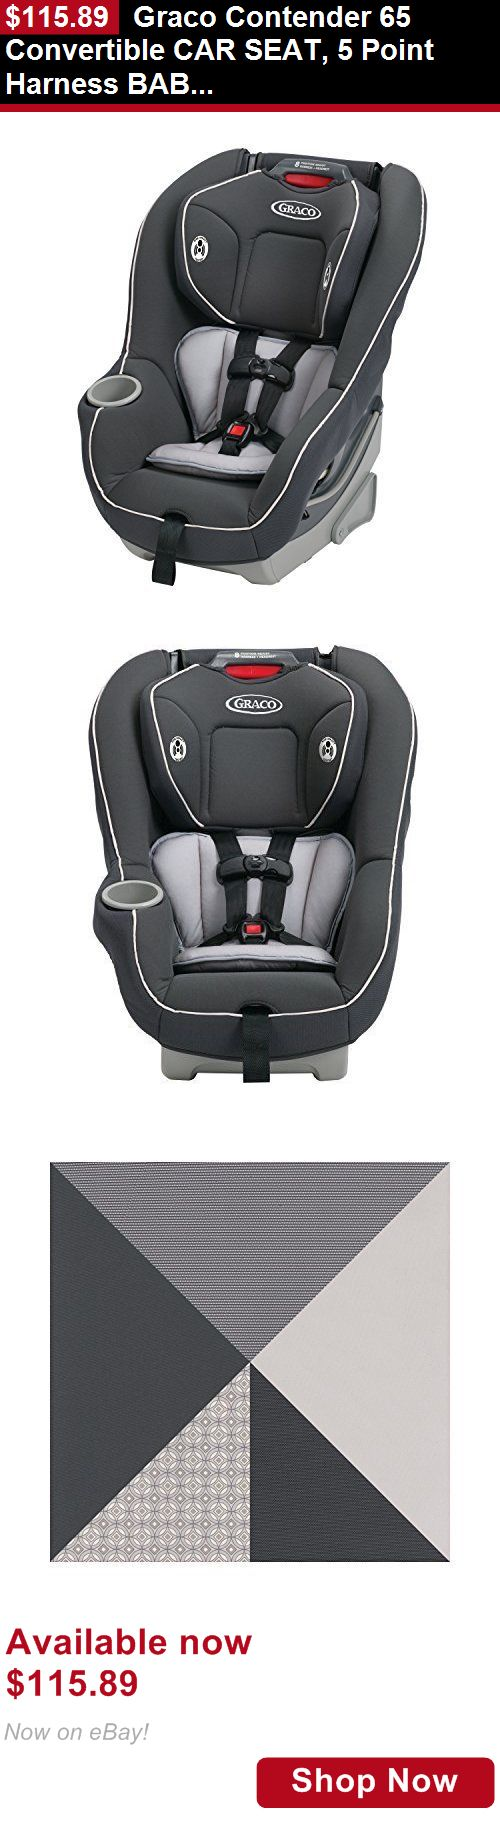 Convertible Car Seat Graco Contender 65 5 Point Harness Baby